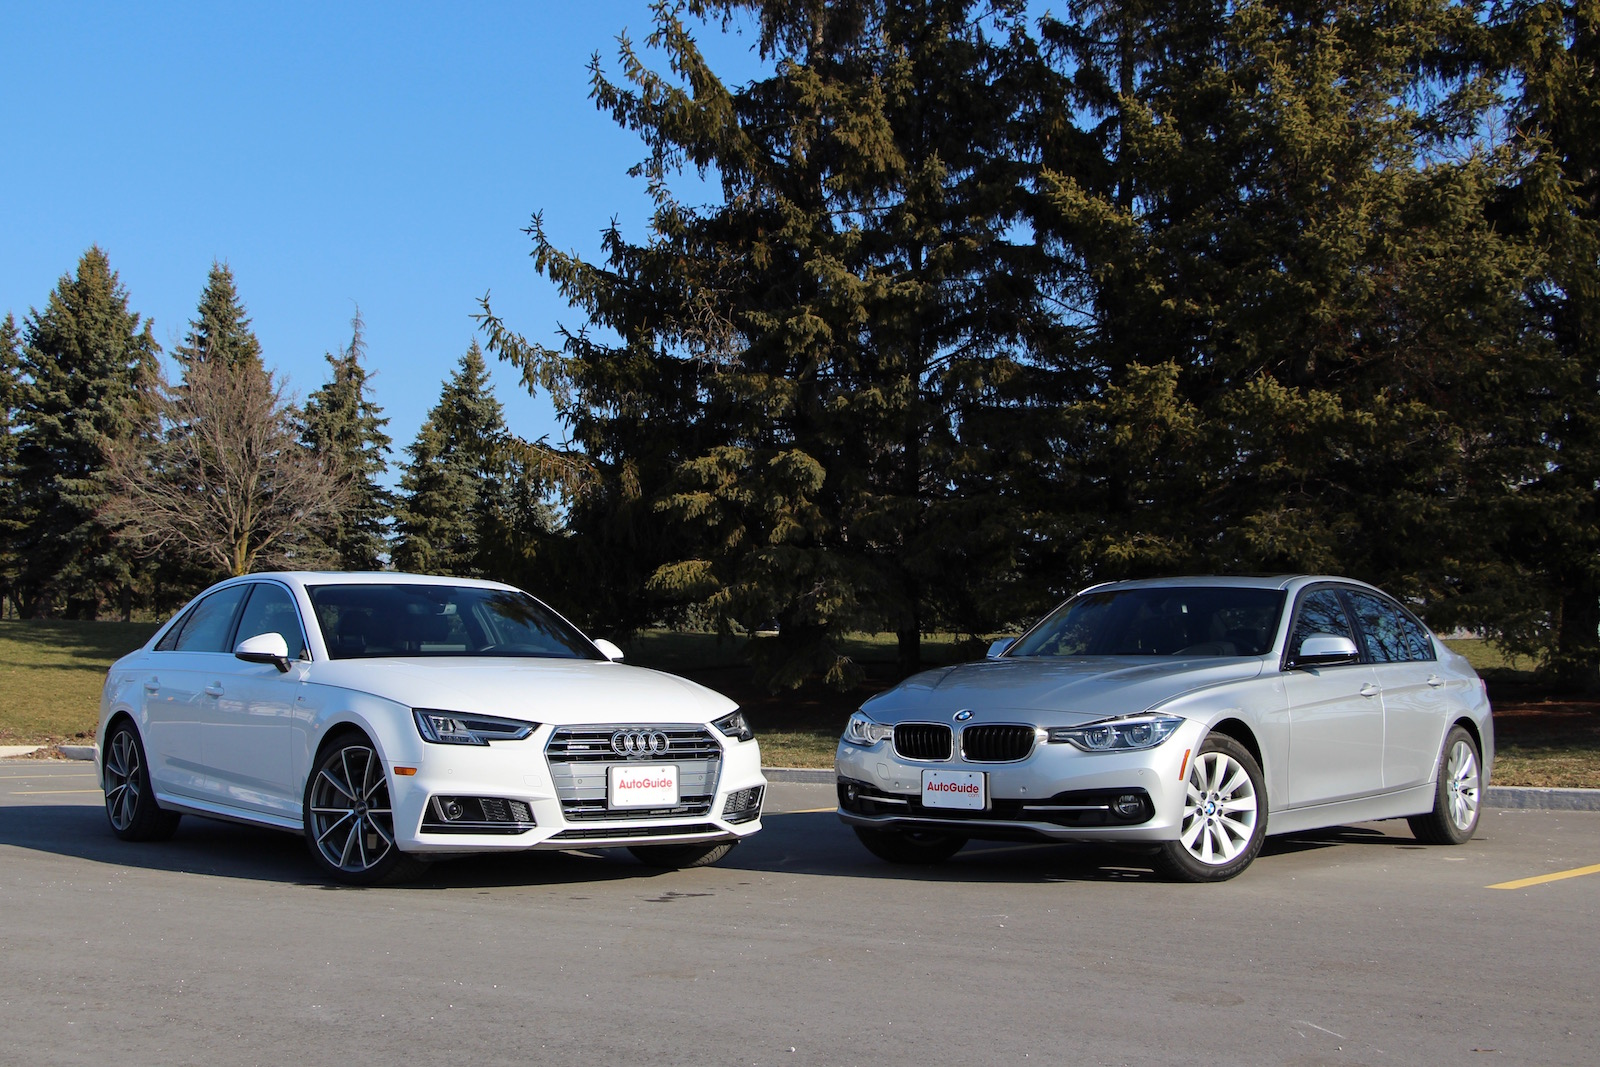 Audi A Vs BMW Series Comparison Review AutoGuidecom - Bmw vs audi